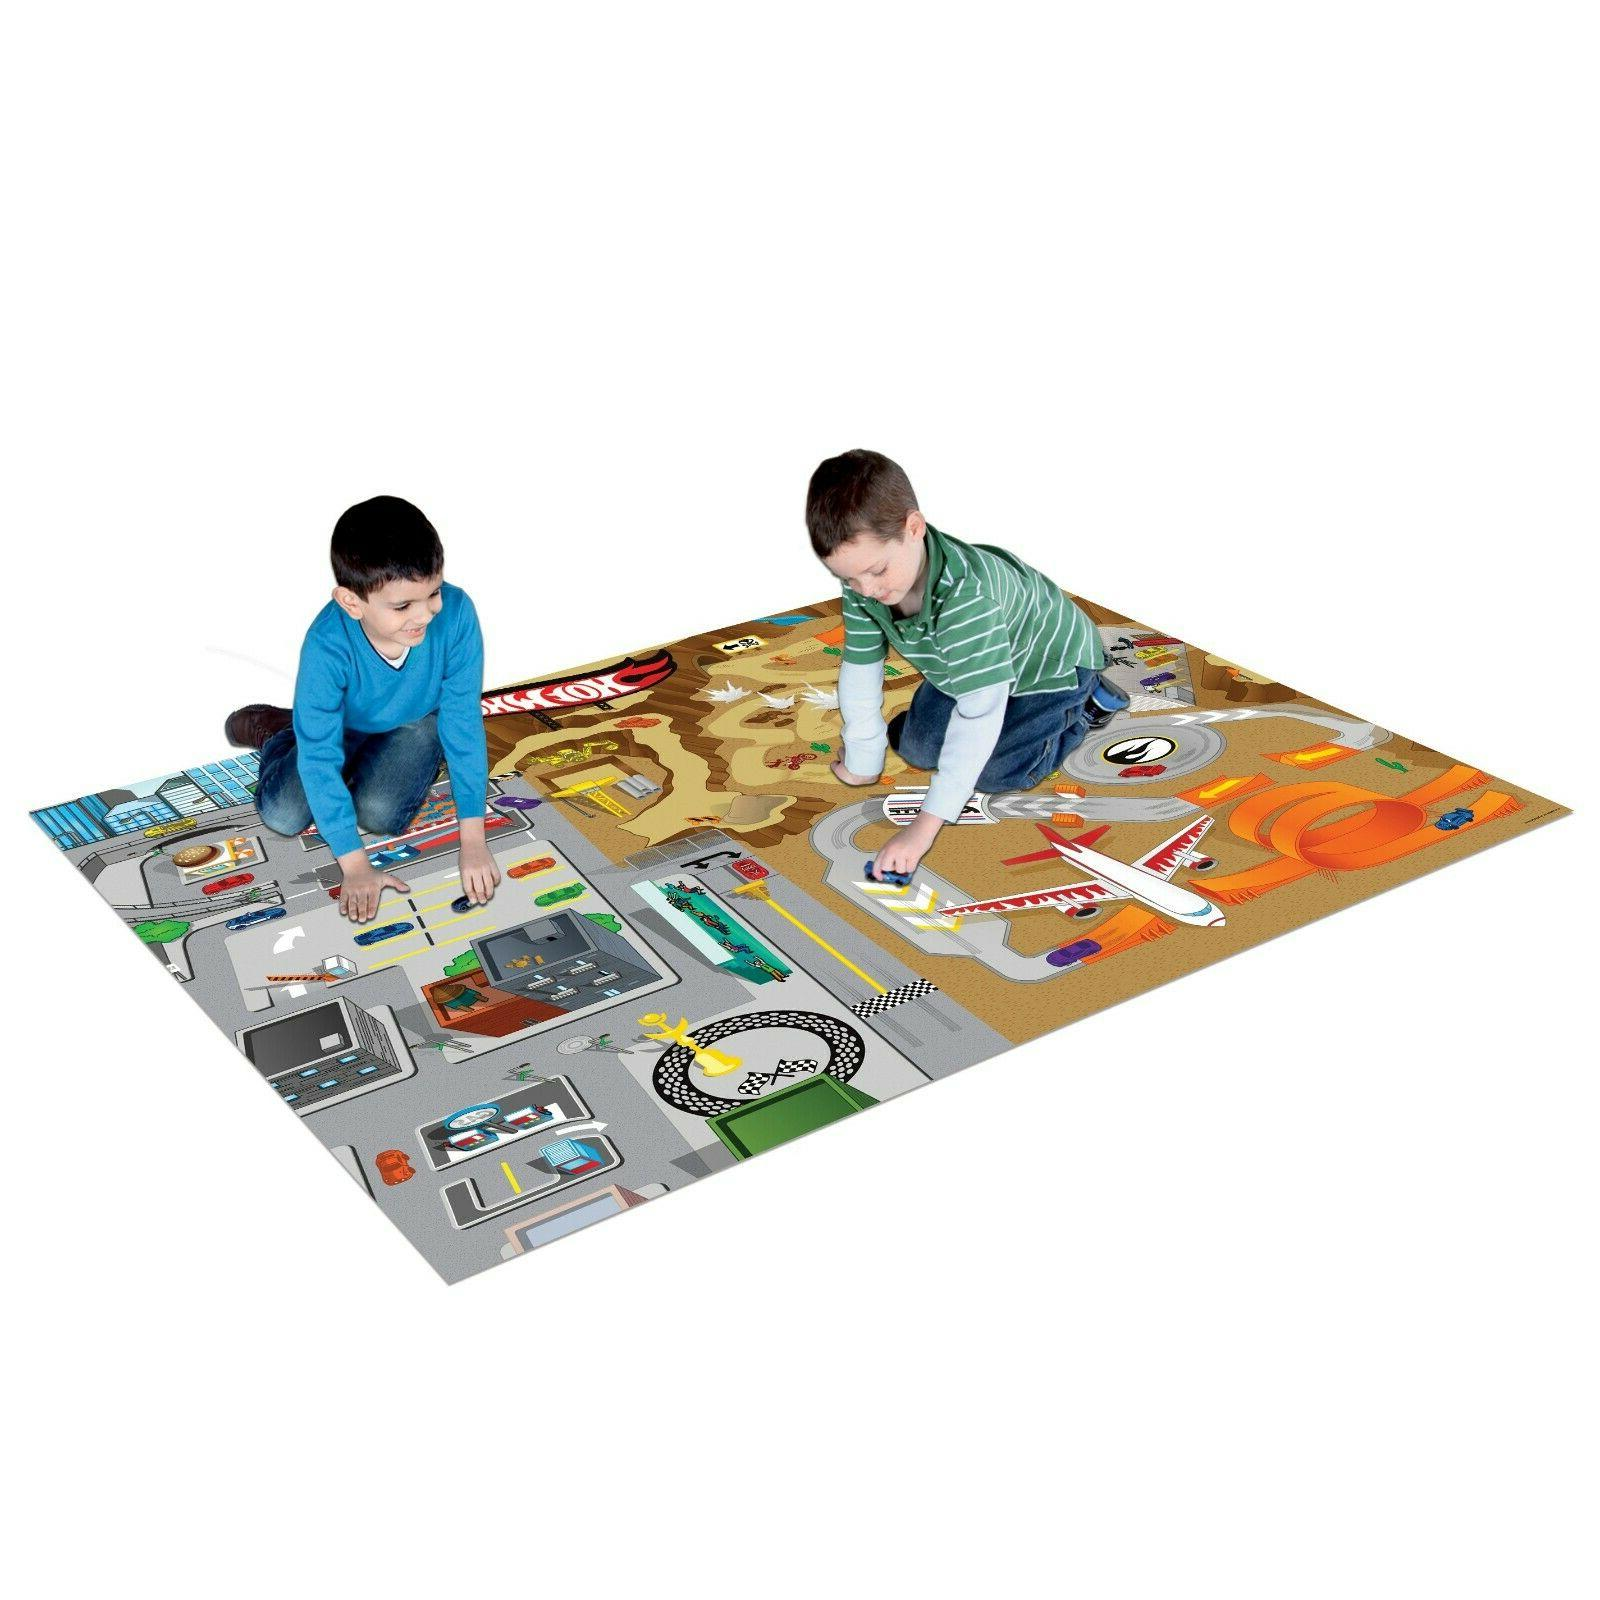 Hot Wheels 12 Piece Playmat with 2 Vehicles